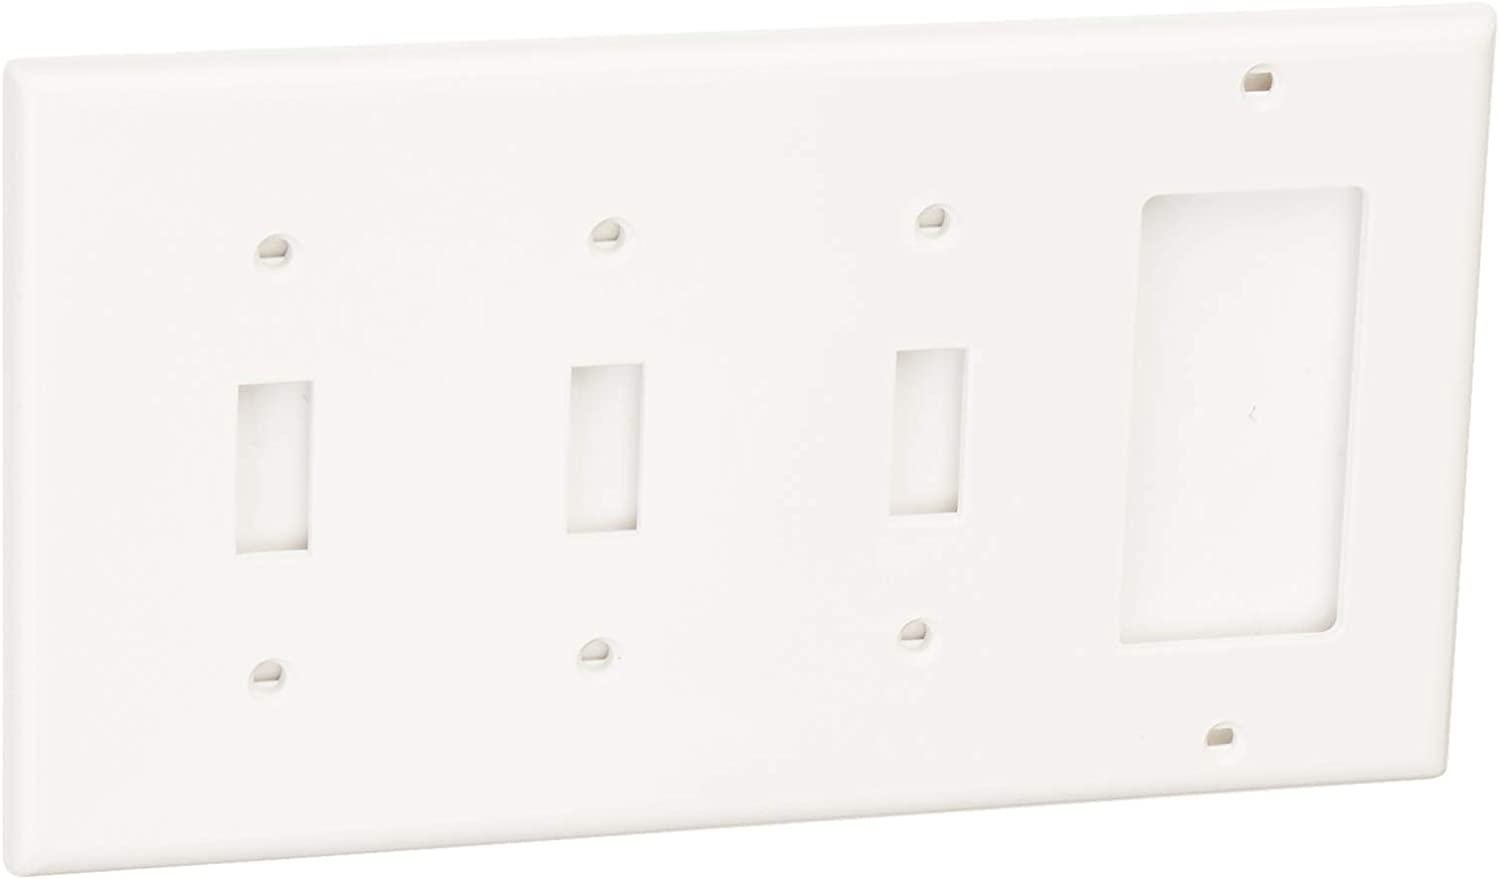 Leviton 80732-W 4-Gang 3-Toggle 1-Decora/GFCI Device Combination Wallplate, Standard Size, Thermoplastic Nylon, Device Mount, White